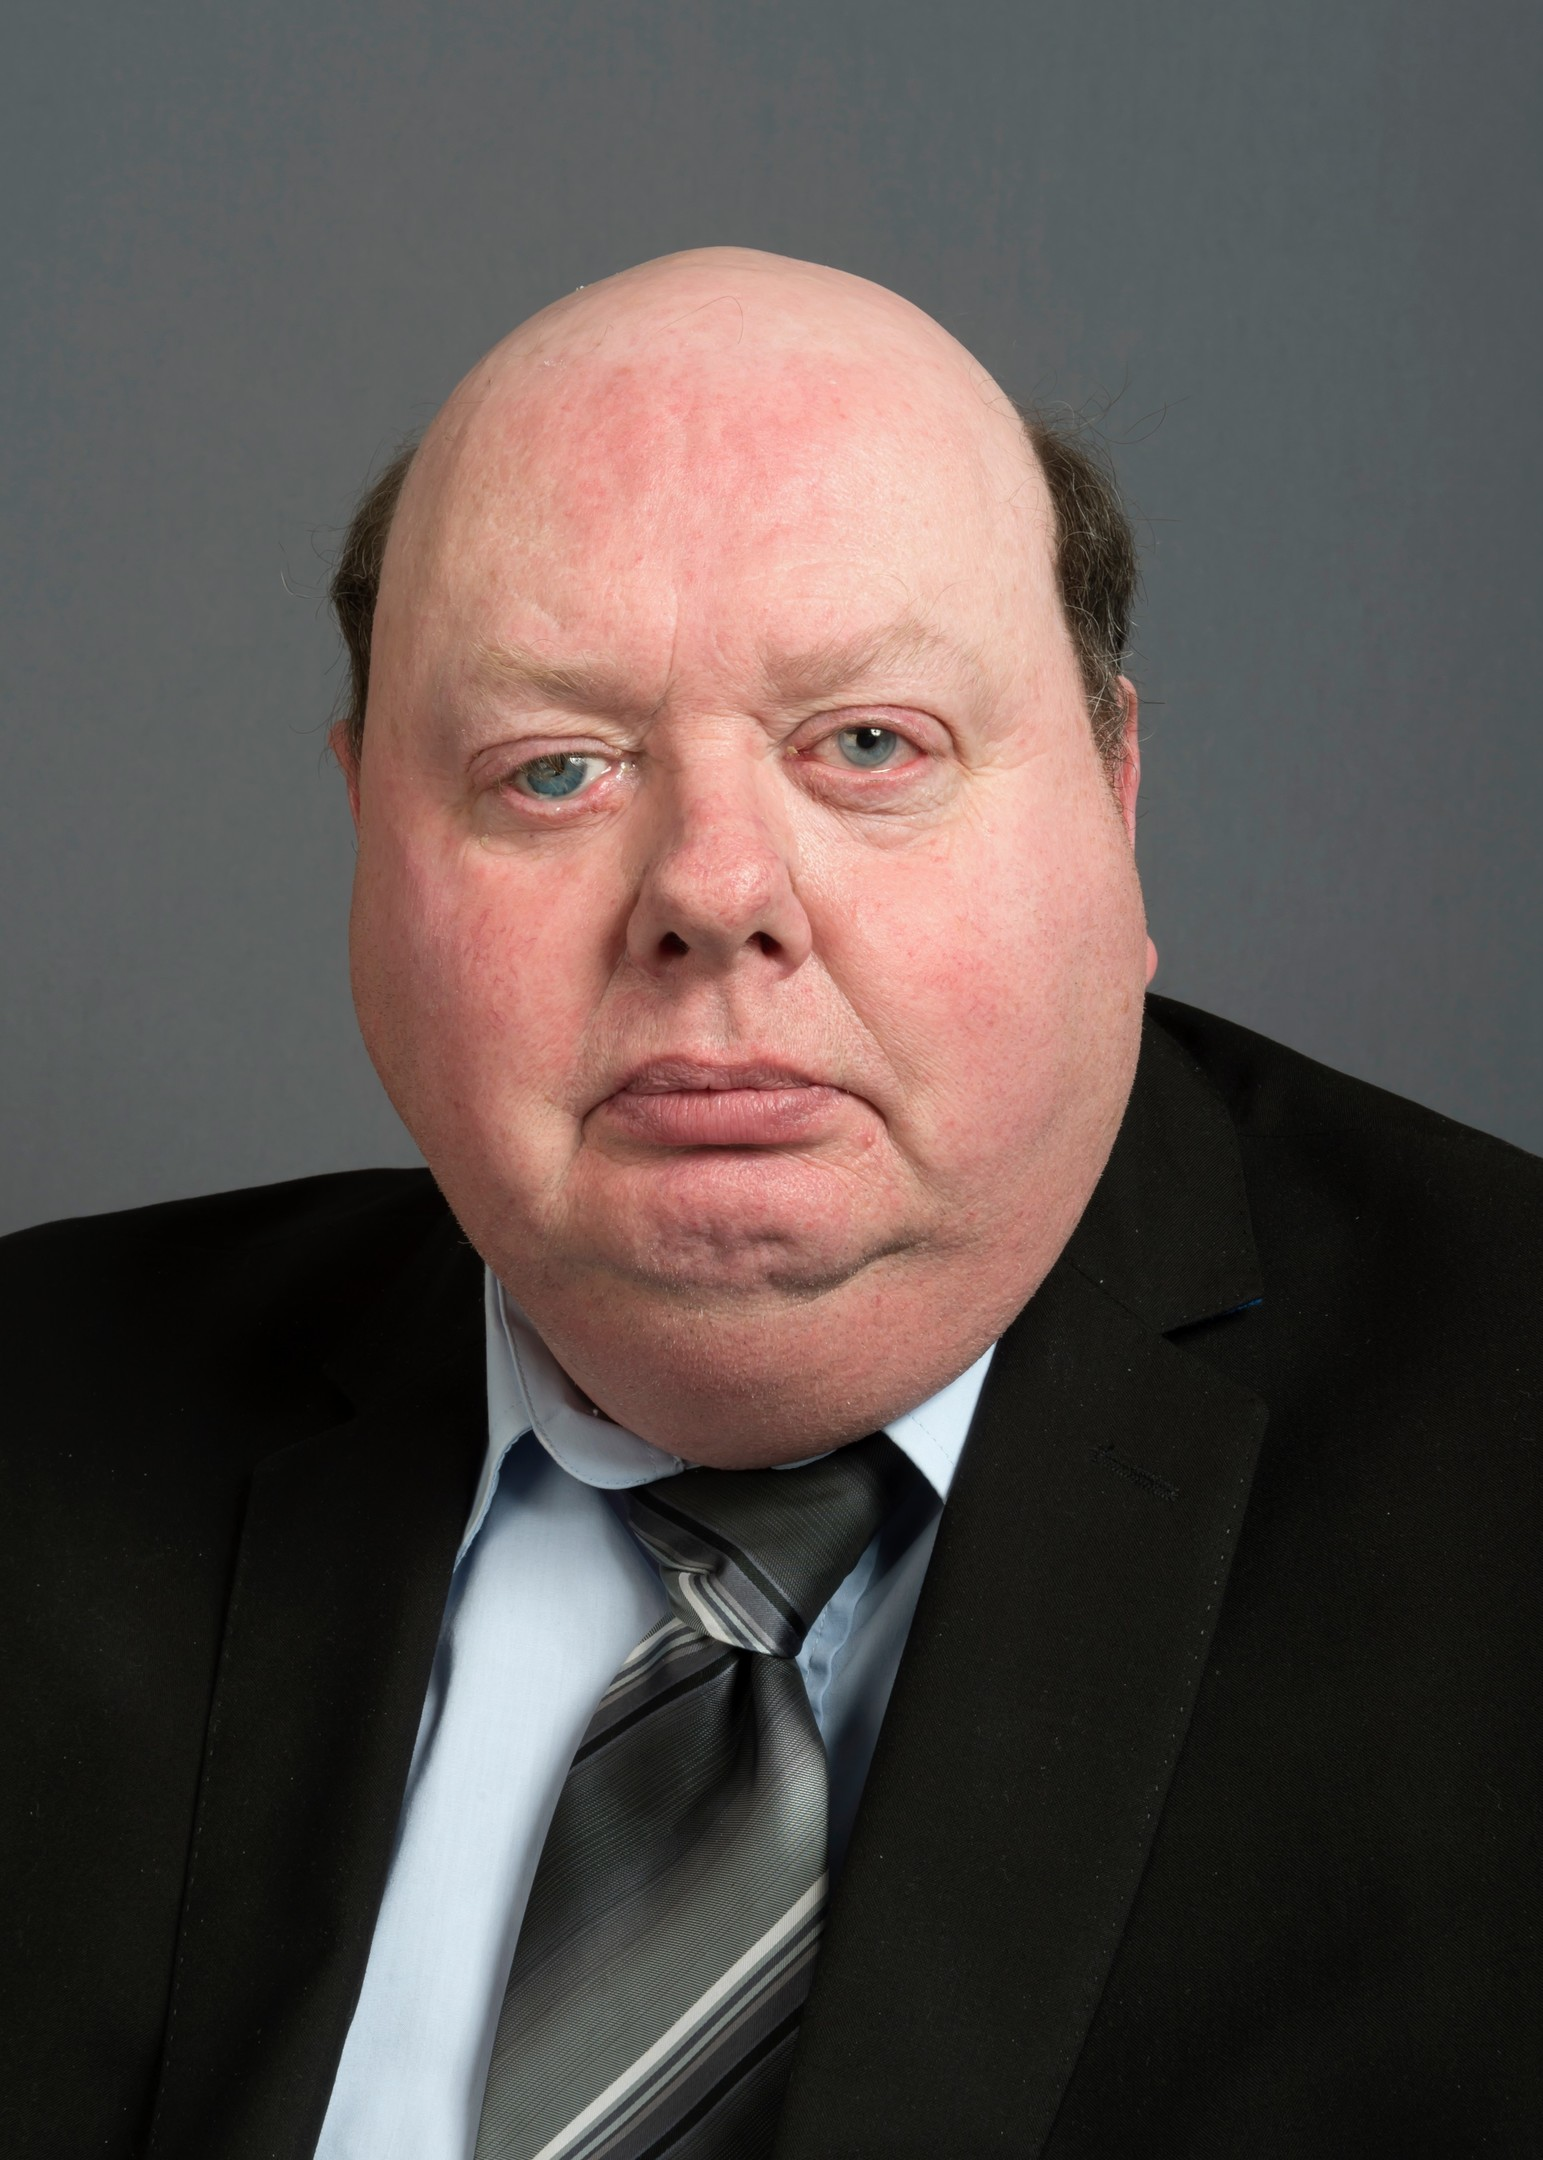 Peterhead councillor Alan Buchan has been selected as the prospective parliamentary candidate for Banff and Buchan by the Brexit Party